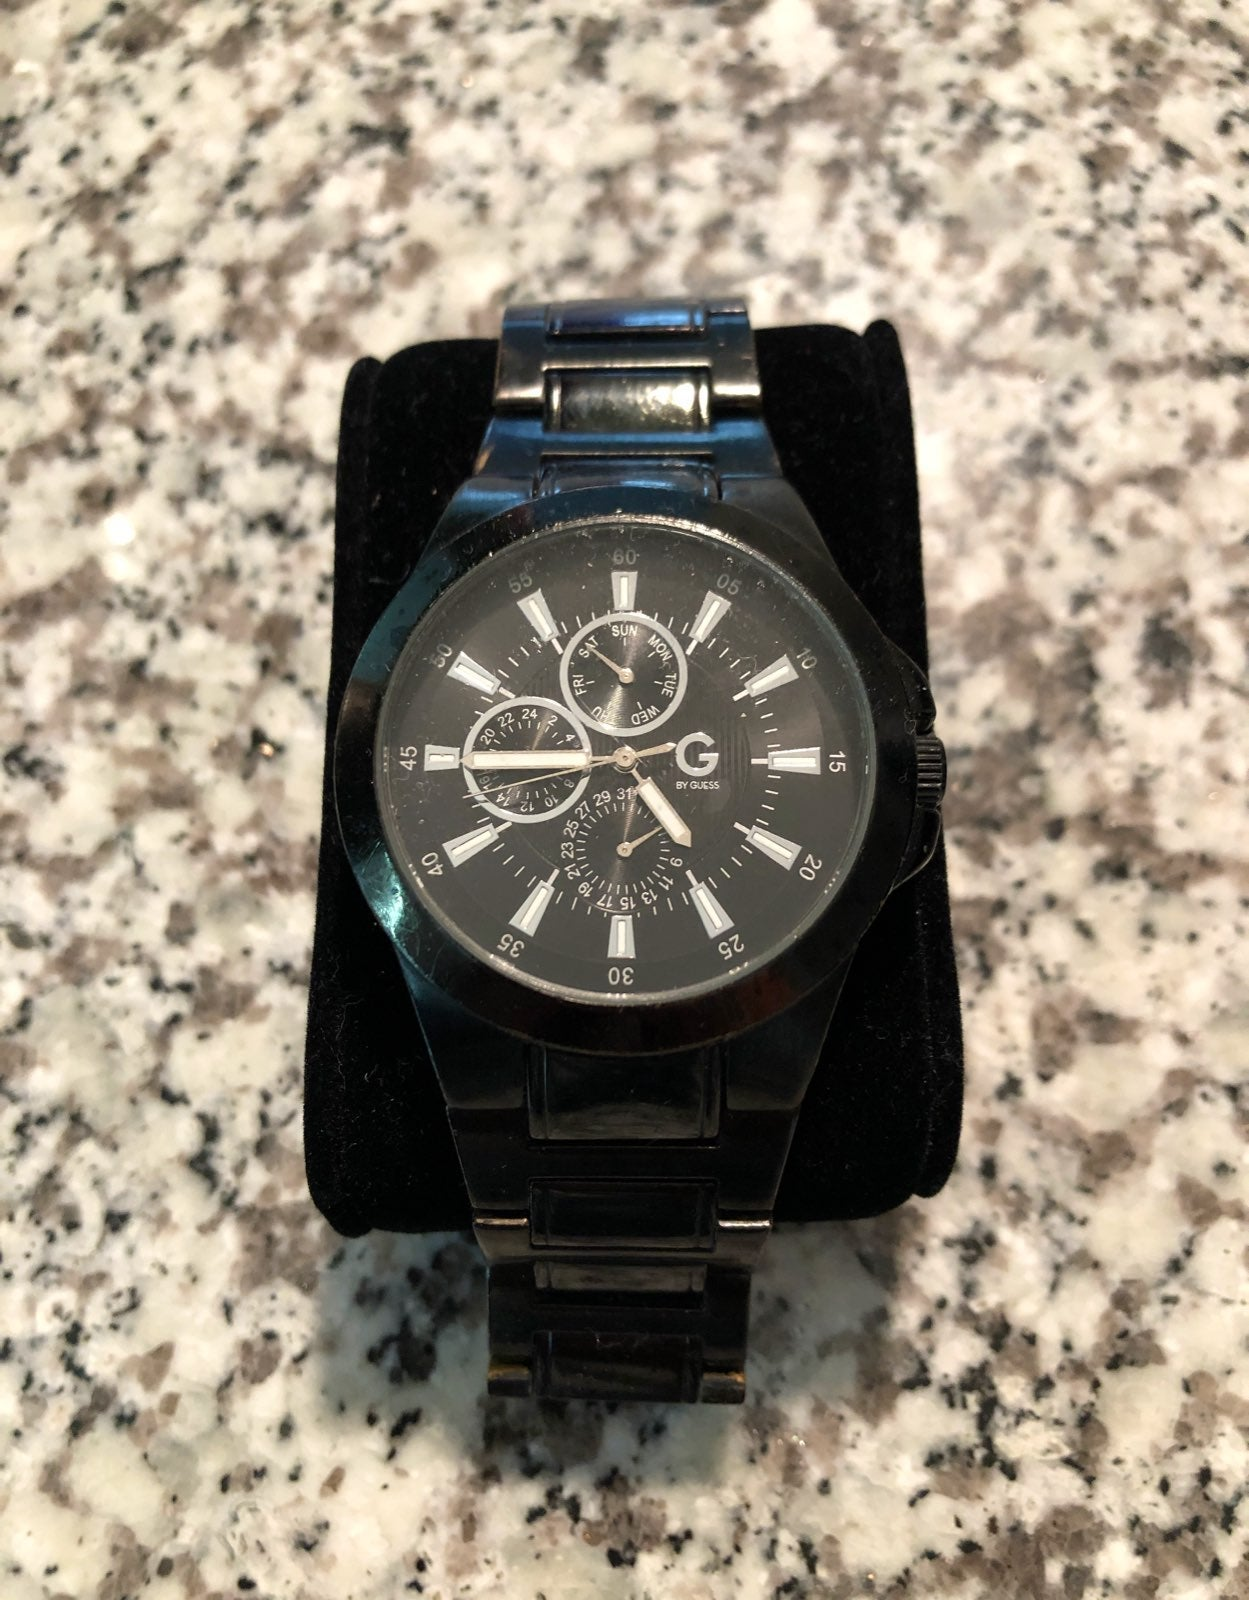 G by guess watches for men